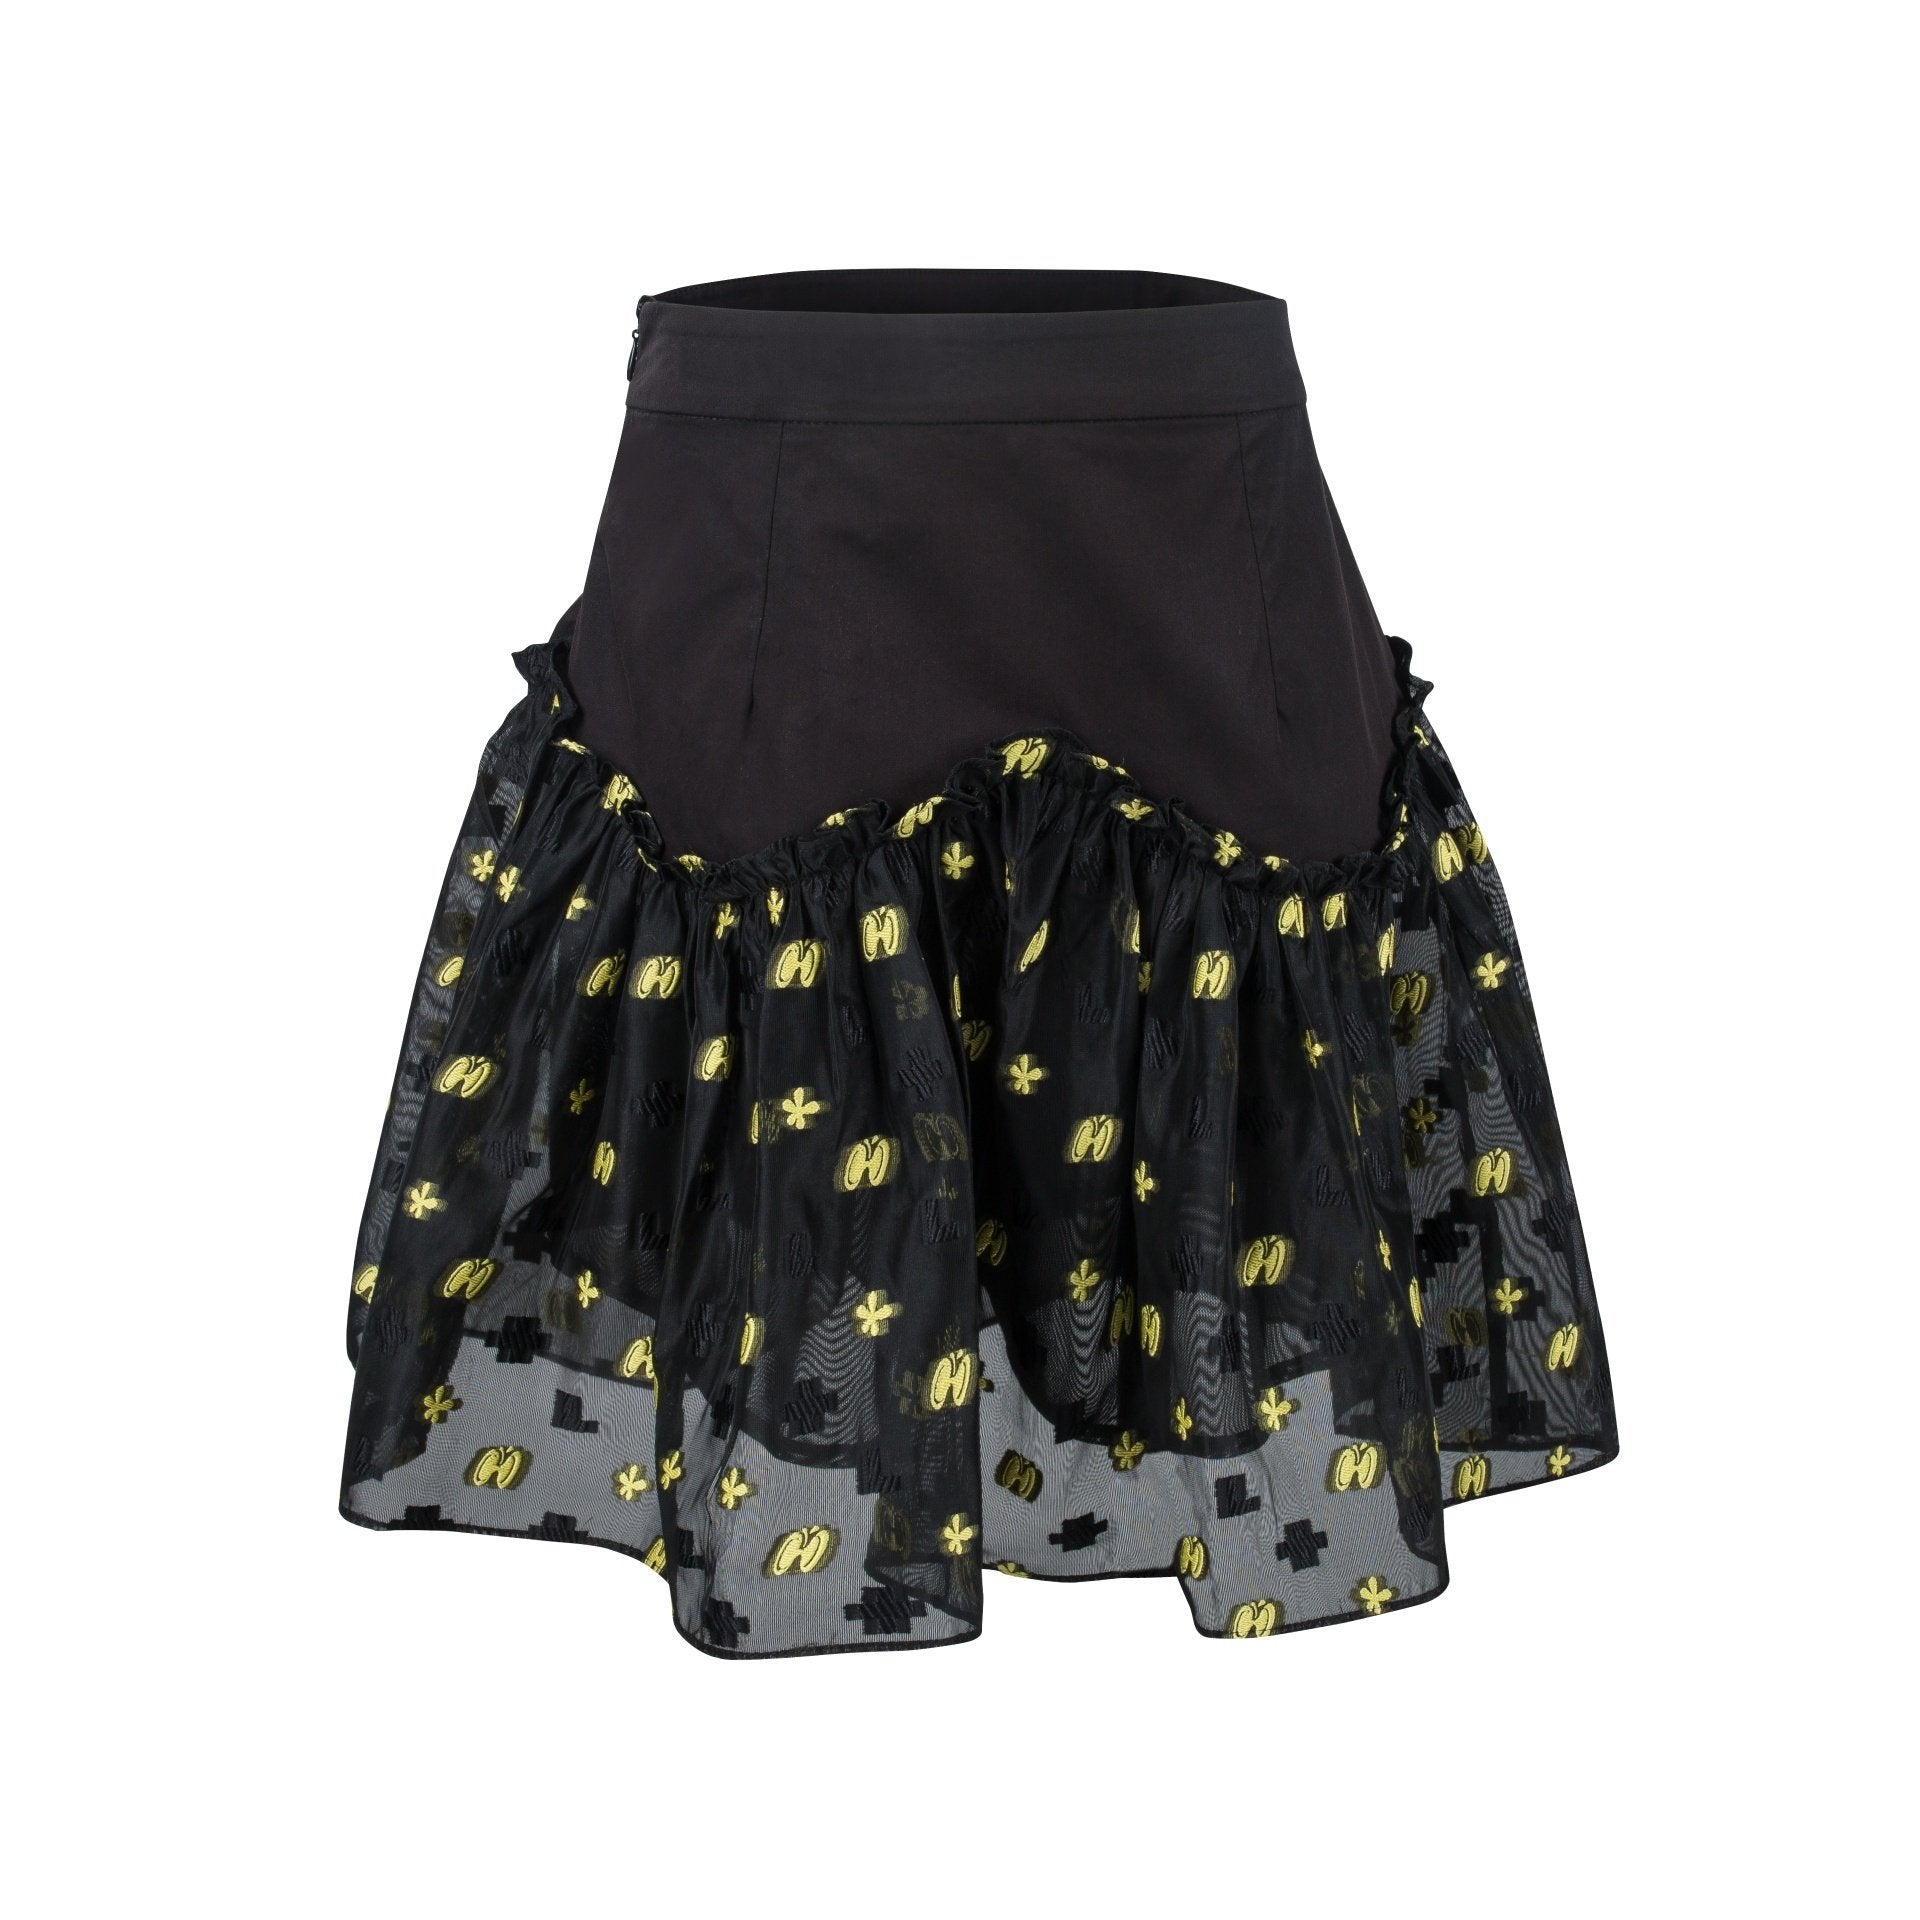 VIAS HERLIAN Black Mesh Jacquard Skirt | MADA IN CHINA